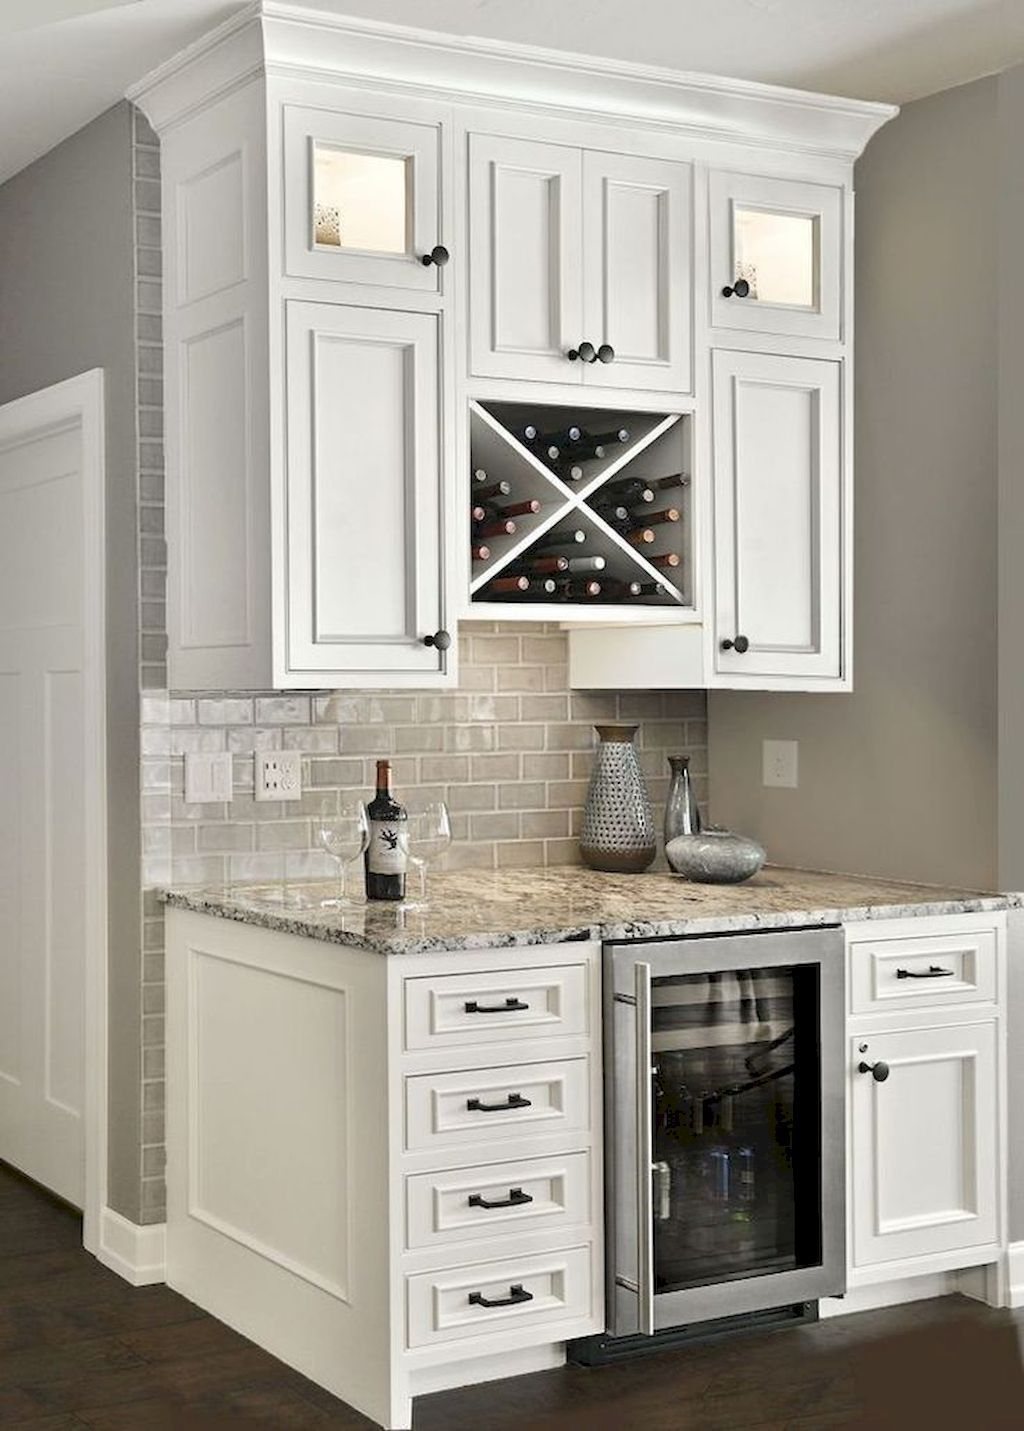 Cleaner For White Kitchen Cabinets Instaimage